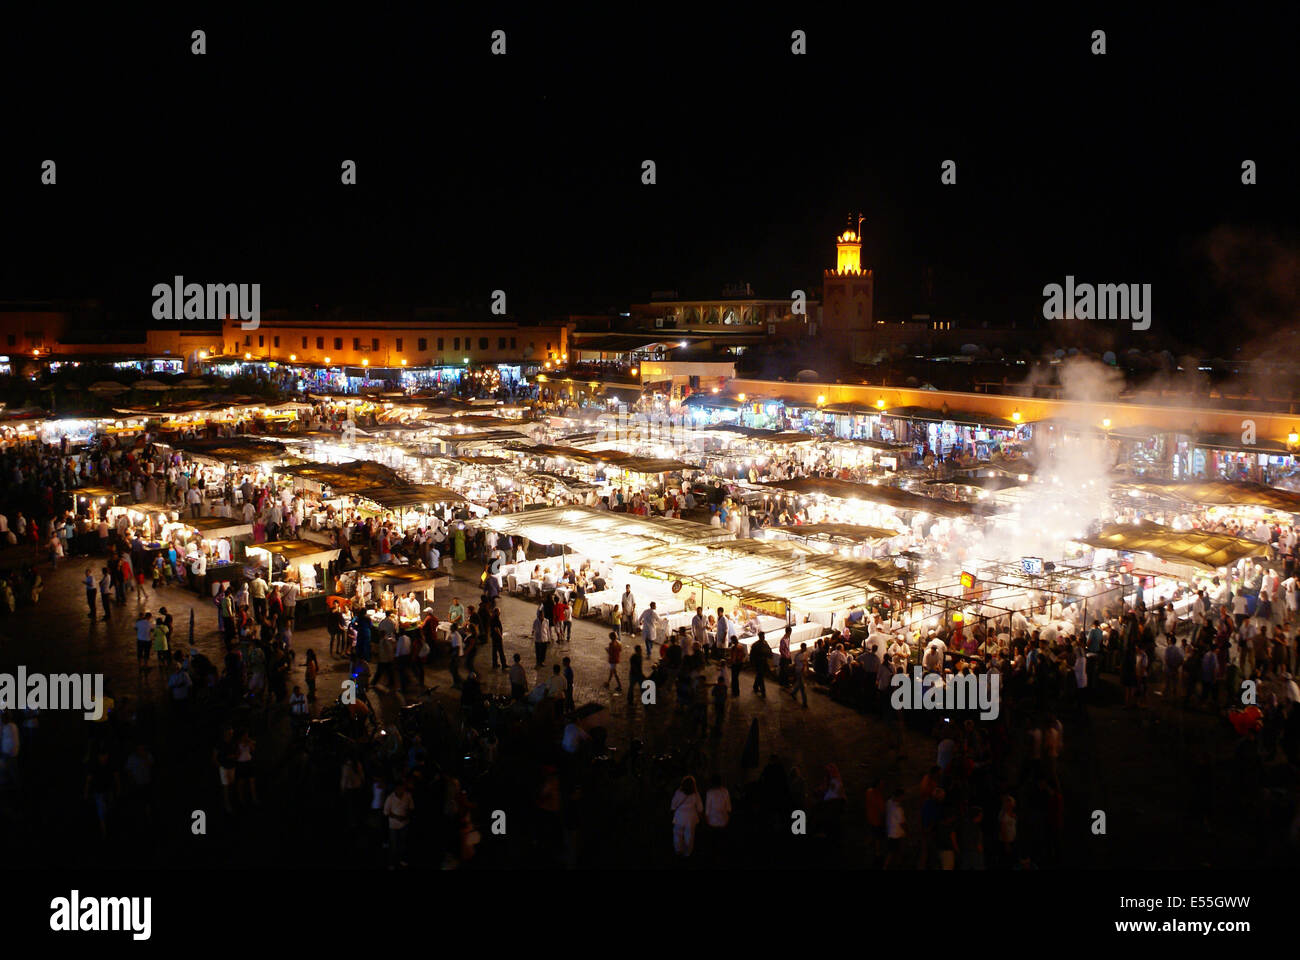 Jemaa el-Fnaa, square and market place in Marrakesh, Morocco Stock Photo